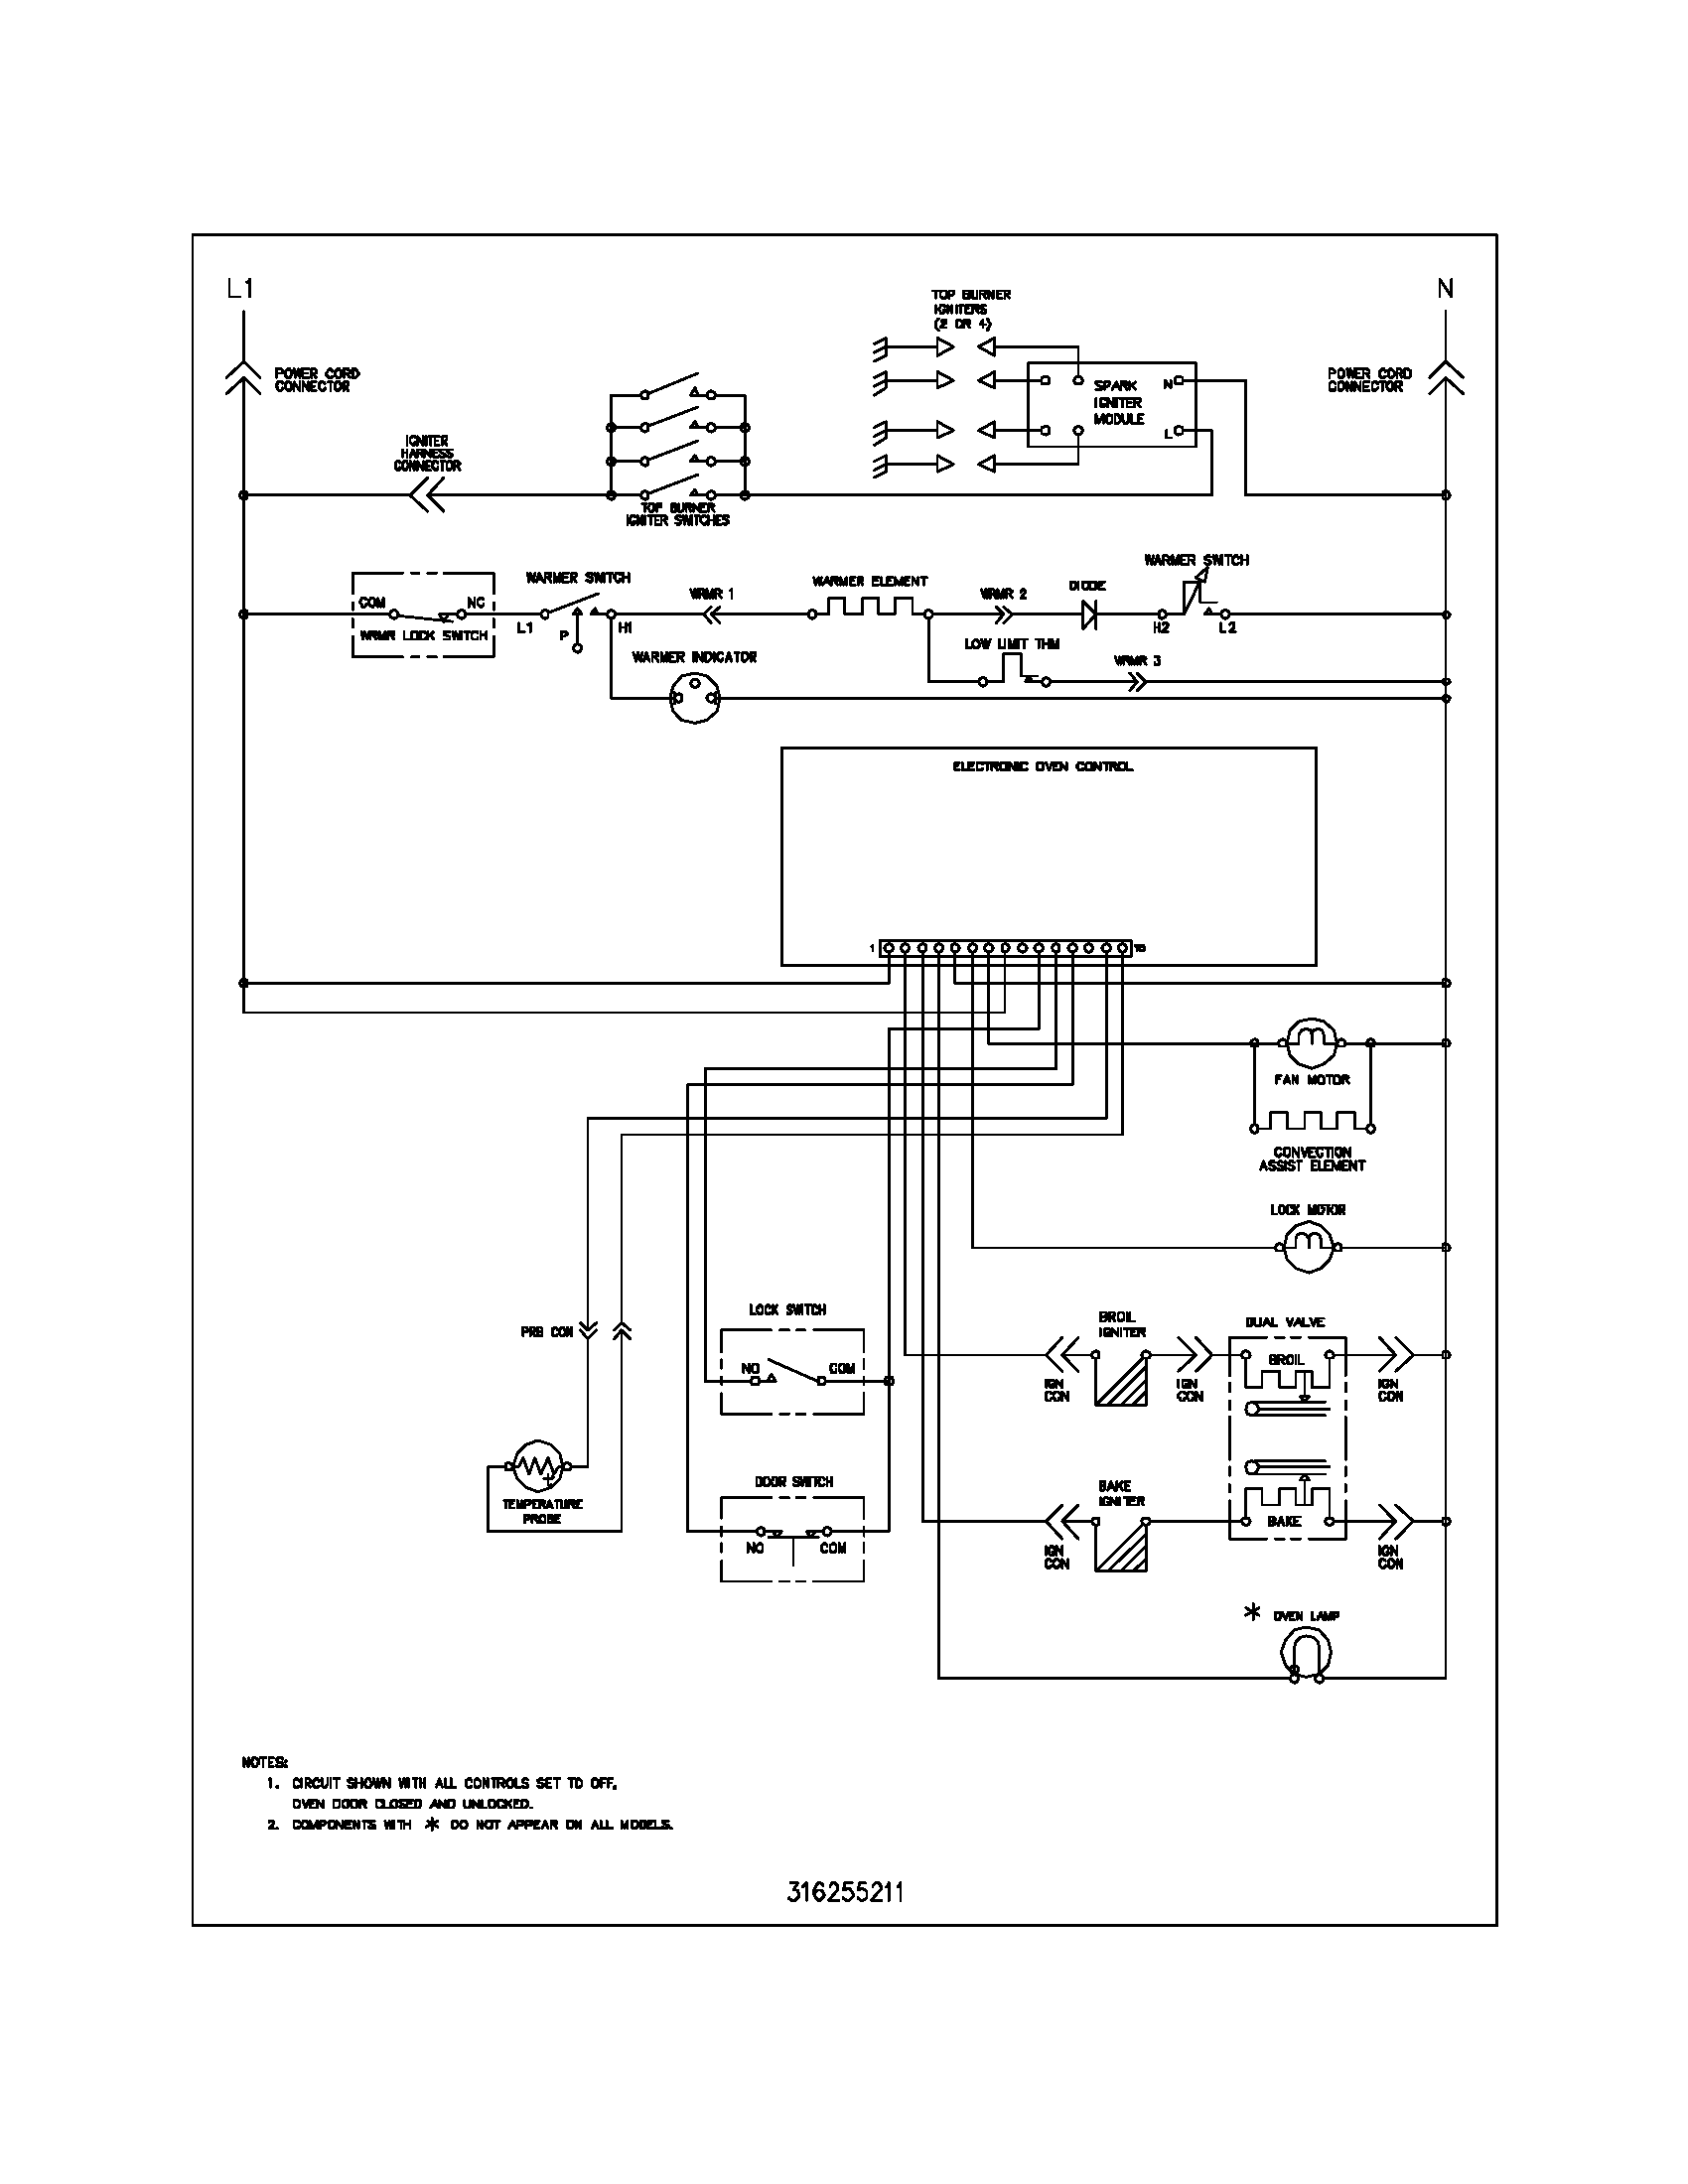 wiring schematic parts frigidaire stove wiring diagram frigidaire washer wiring diagram  at crackthecode.co